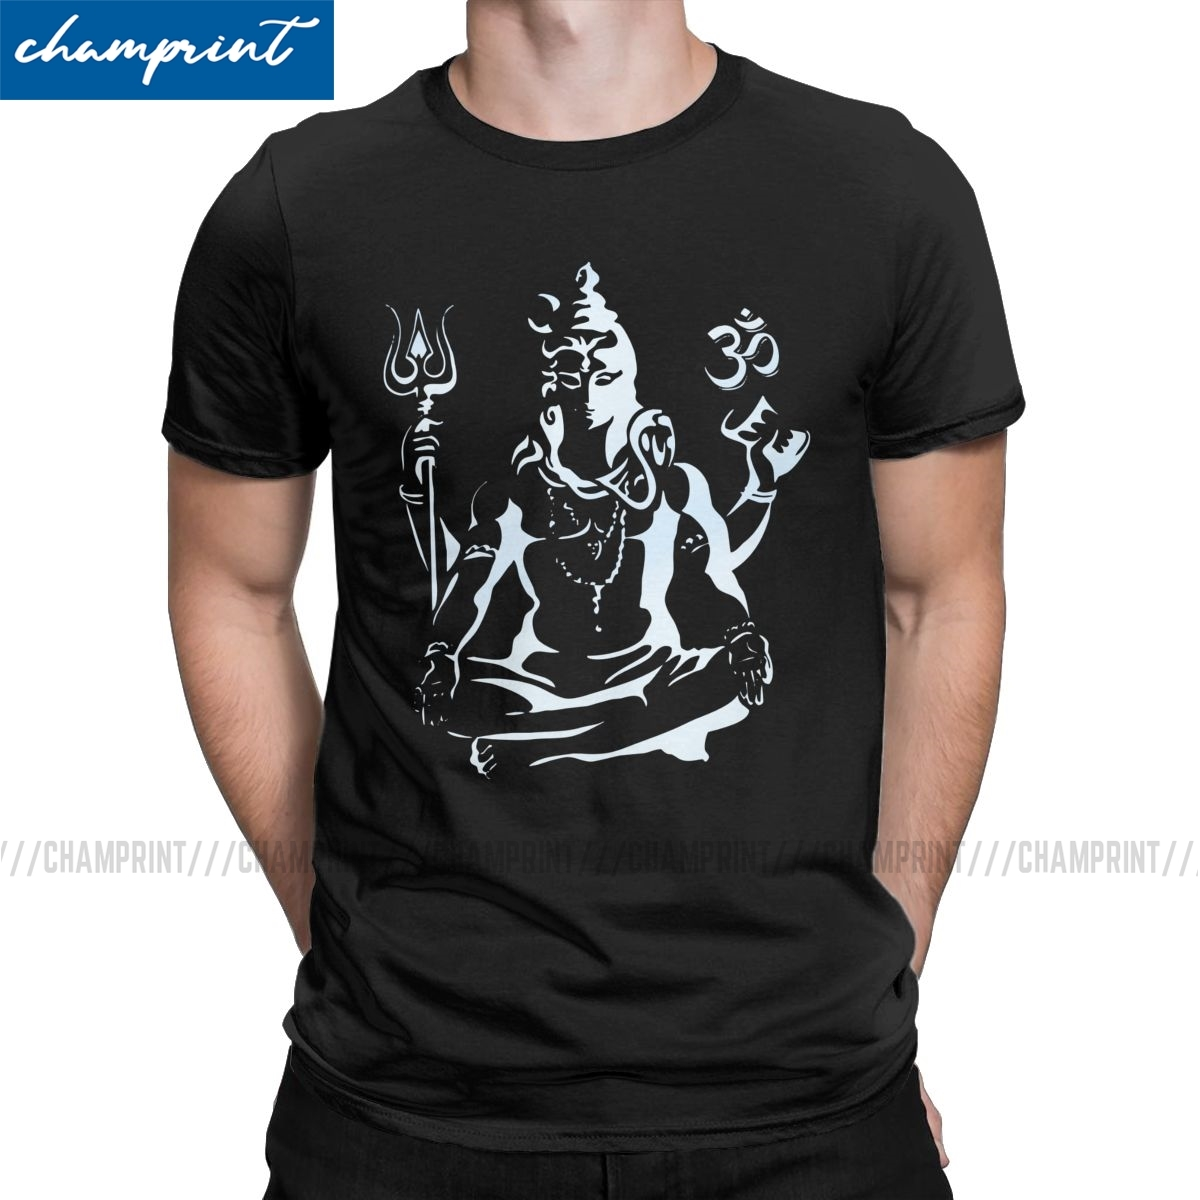 Lord Shiva T-<font><b>Shirts</b></font> for Men Hindu Ganesha <font><b>God</b></font> India Lingam Amazing Tee <font><b>Shirt</b></font> Crewneck Short Sleeve T <font><b>Shirt</b></font> 4XL 5XL Clothing image